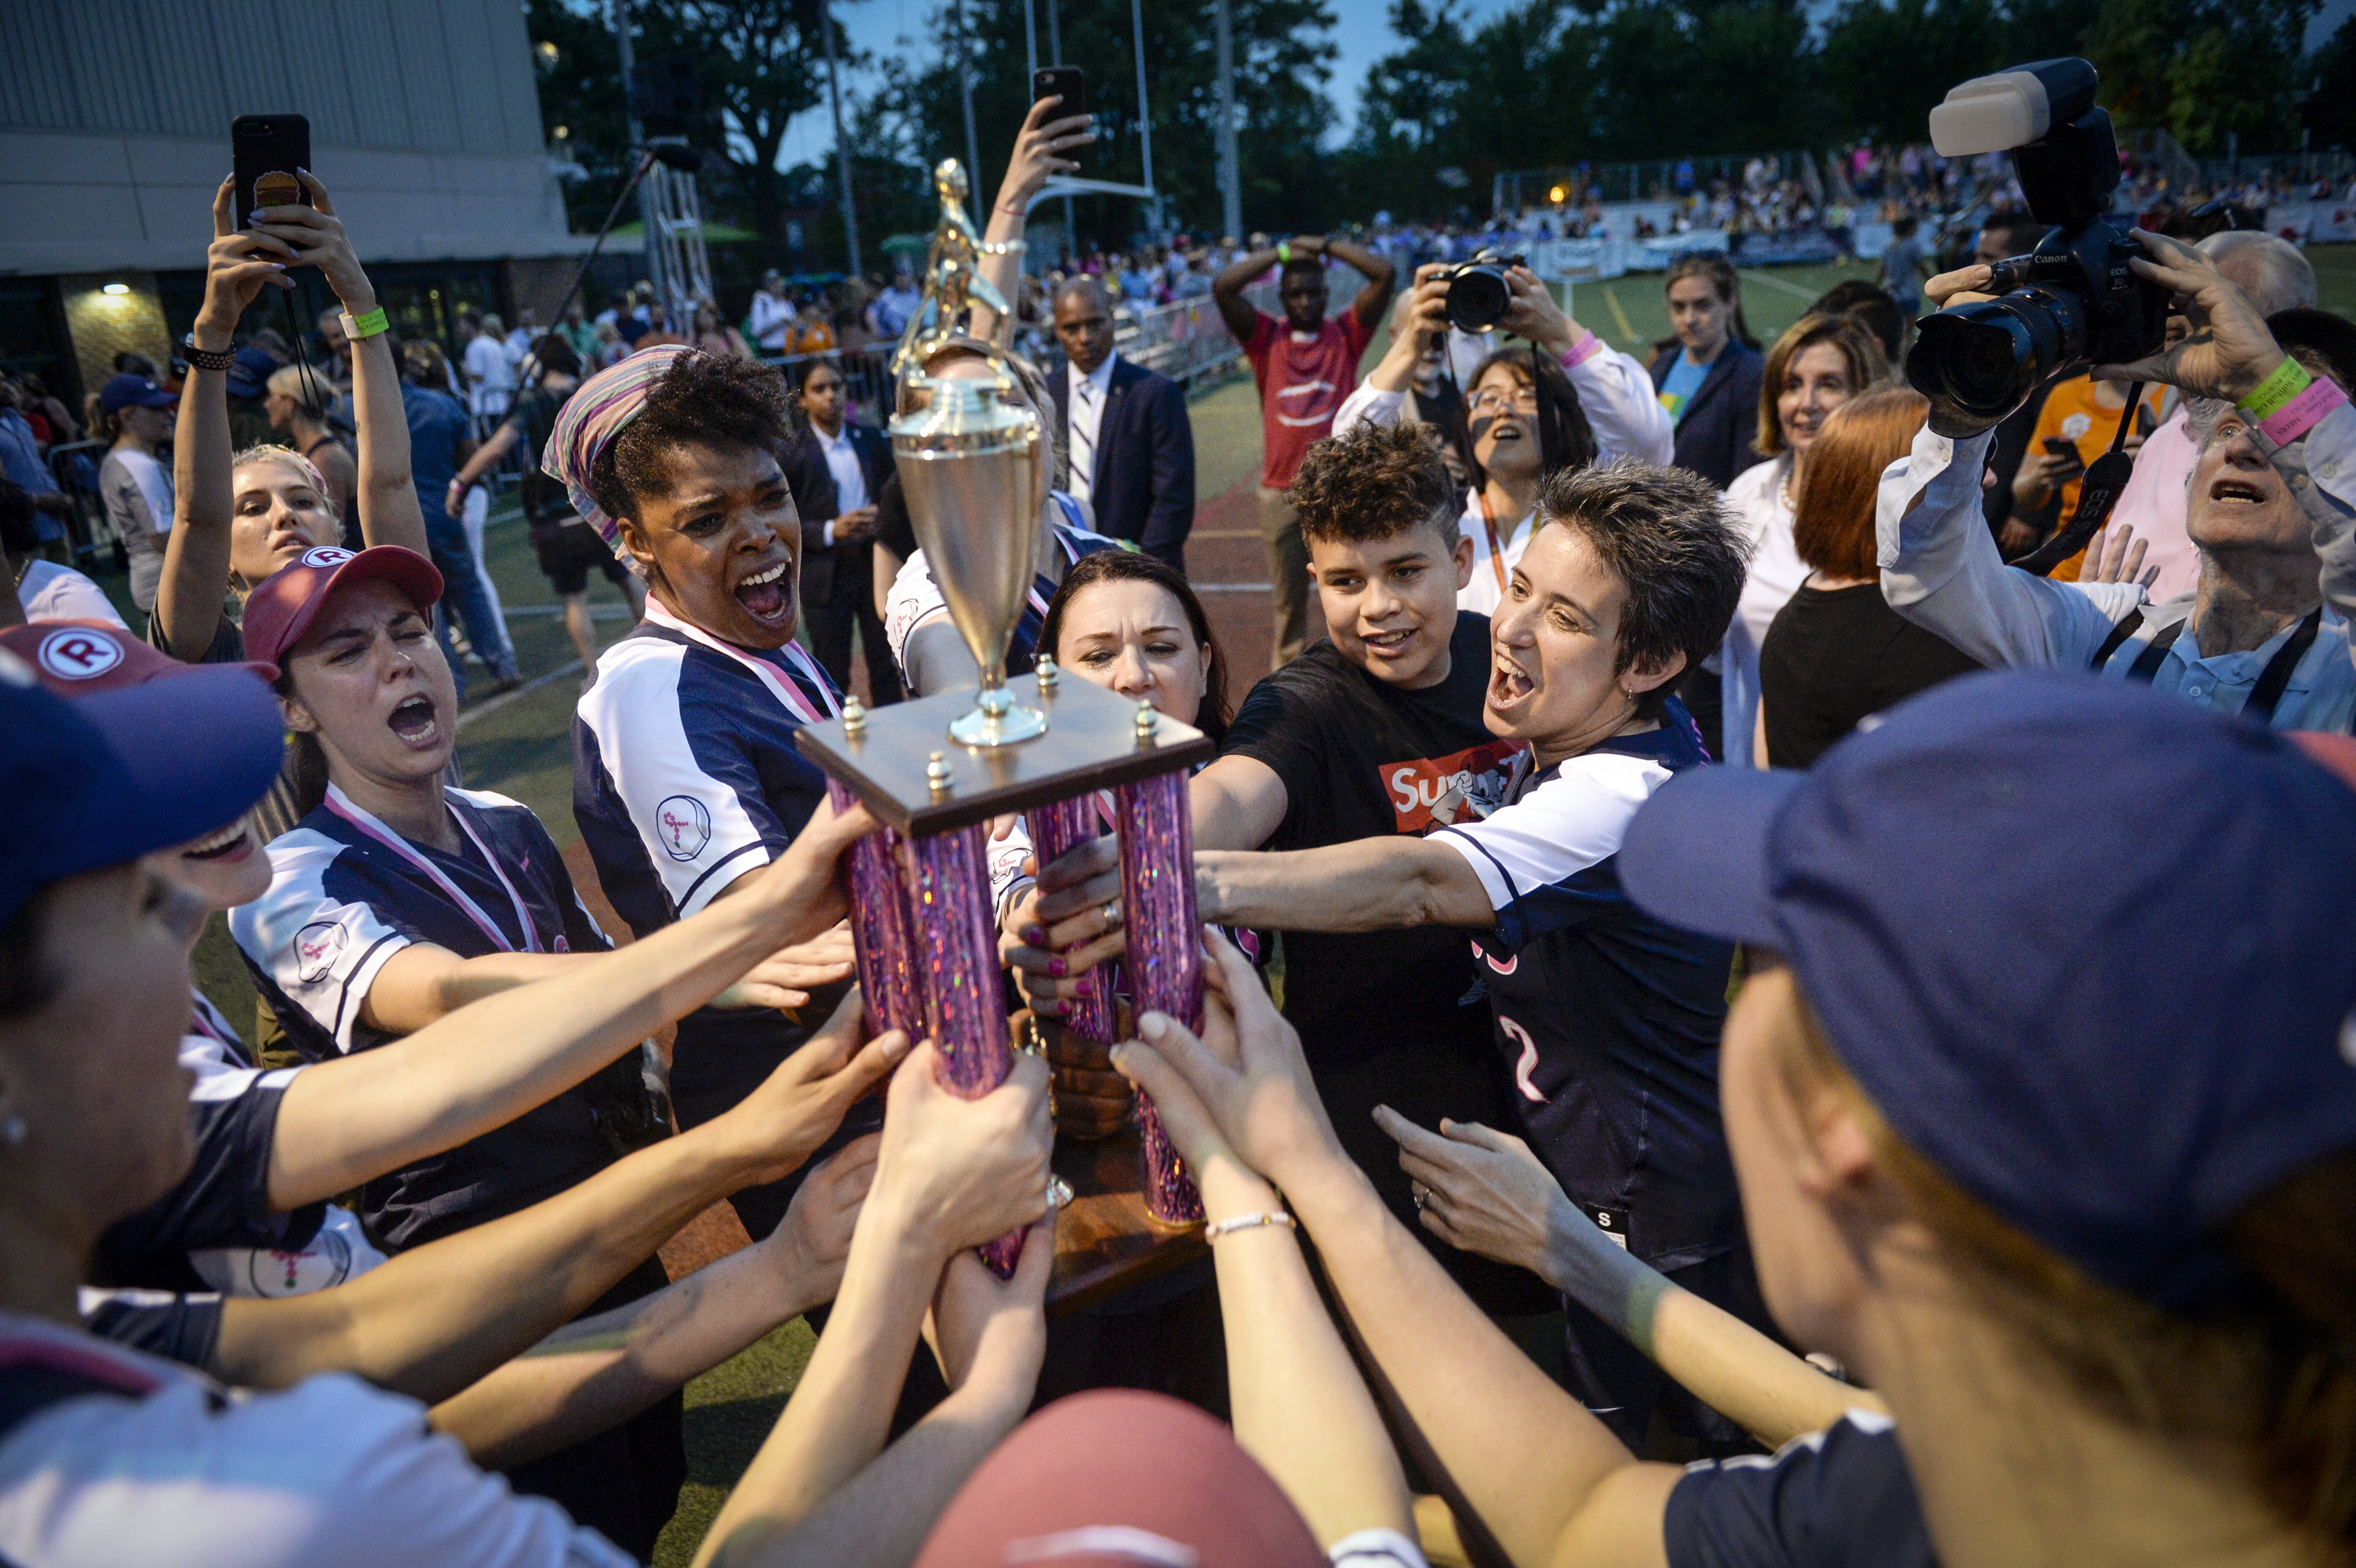 UNITED STATES - JUNE 19: The press softball team holds up a trophy after winning against the Congressional softball team in the in the Congressional Women's Softball Game at Watkins Elementary in Washington on Wednesday June 19, 2019. (Photo by Caroline Brehman/CQ Roll Call)